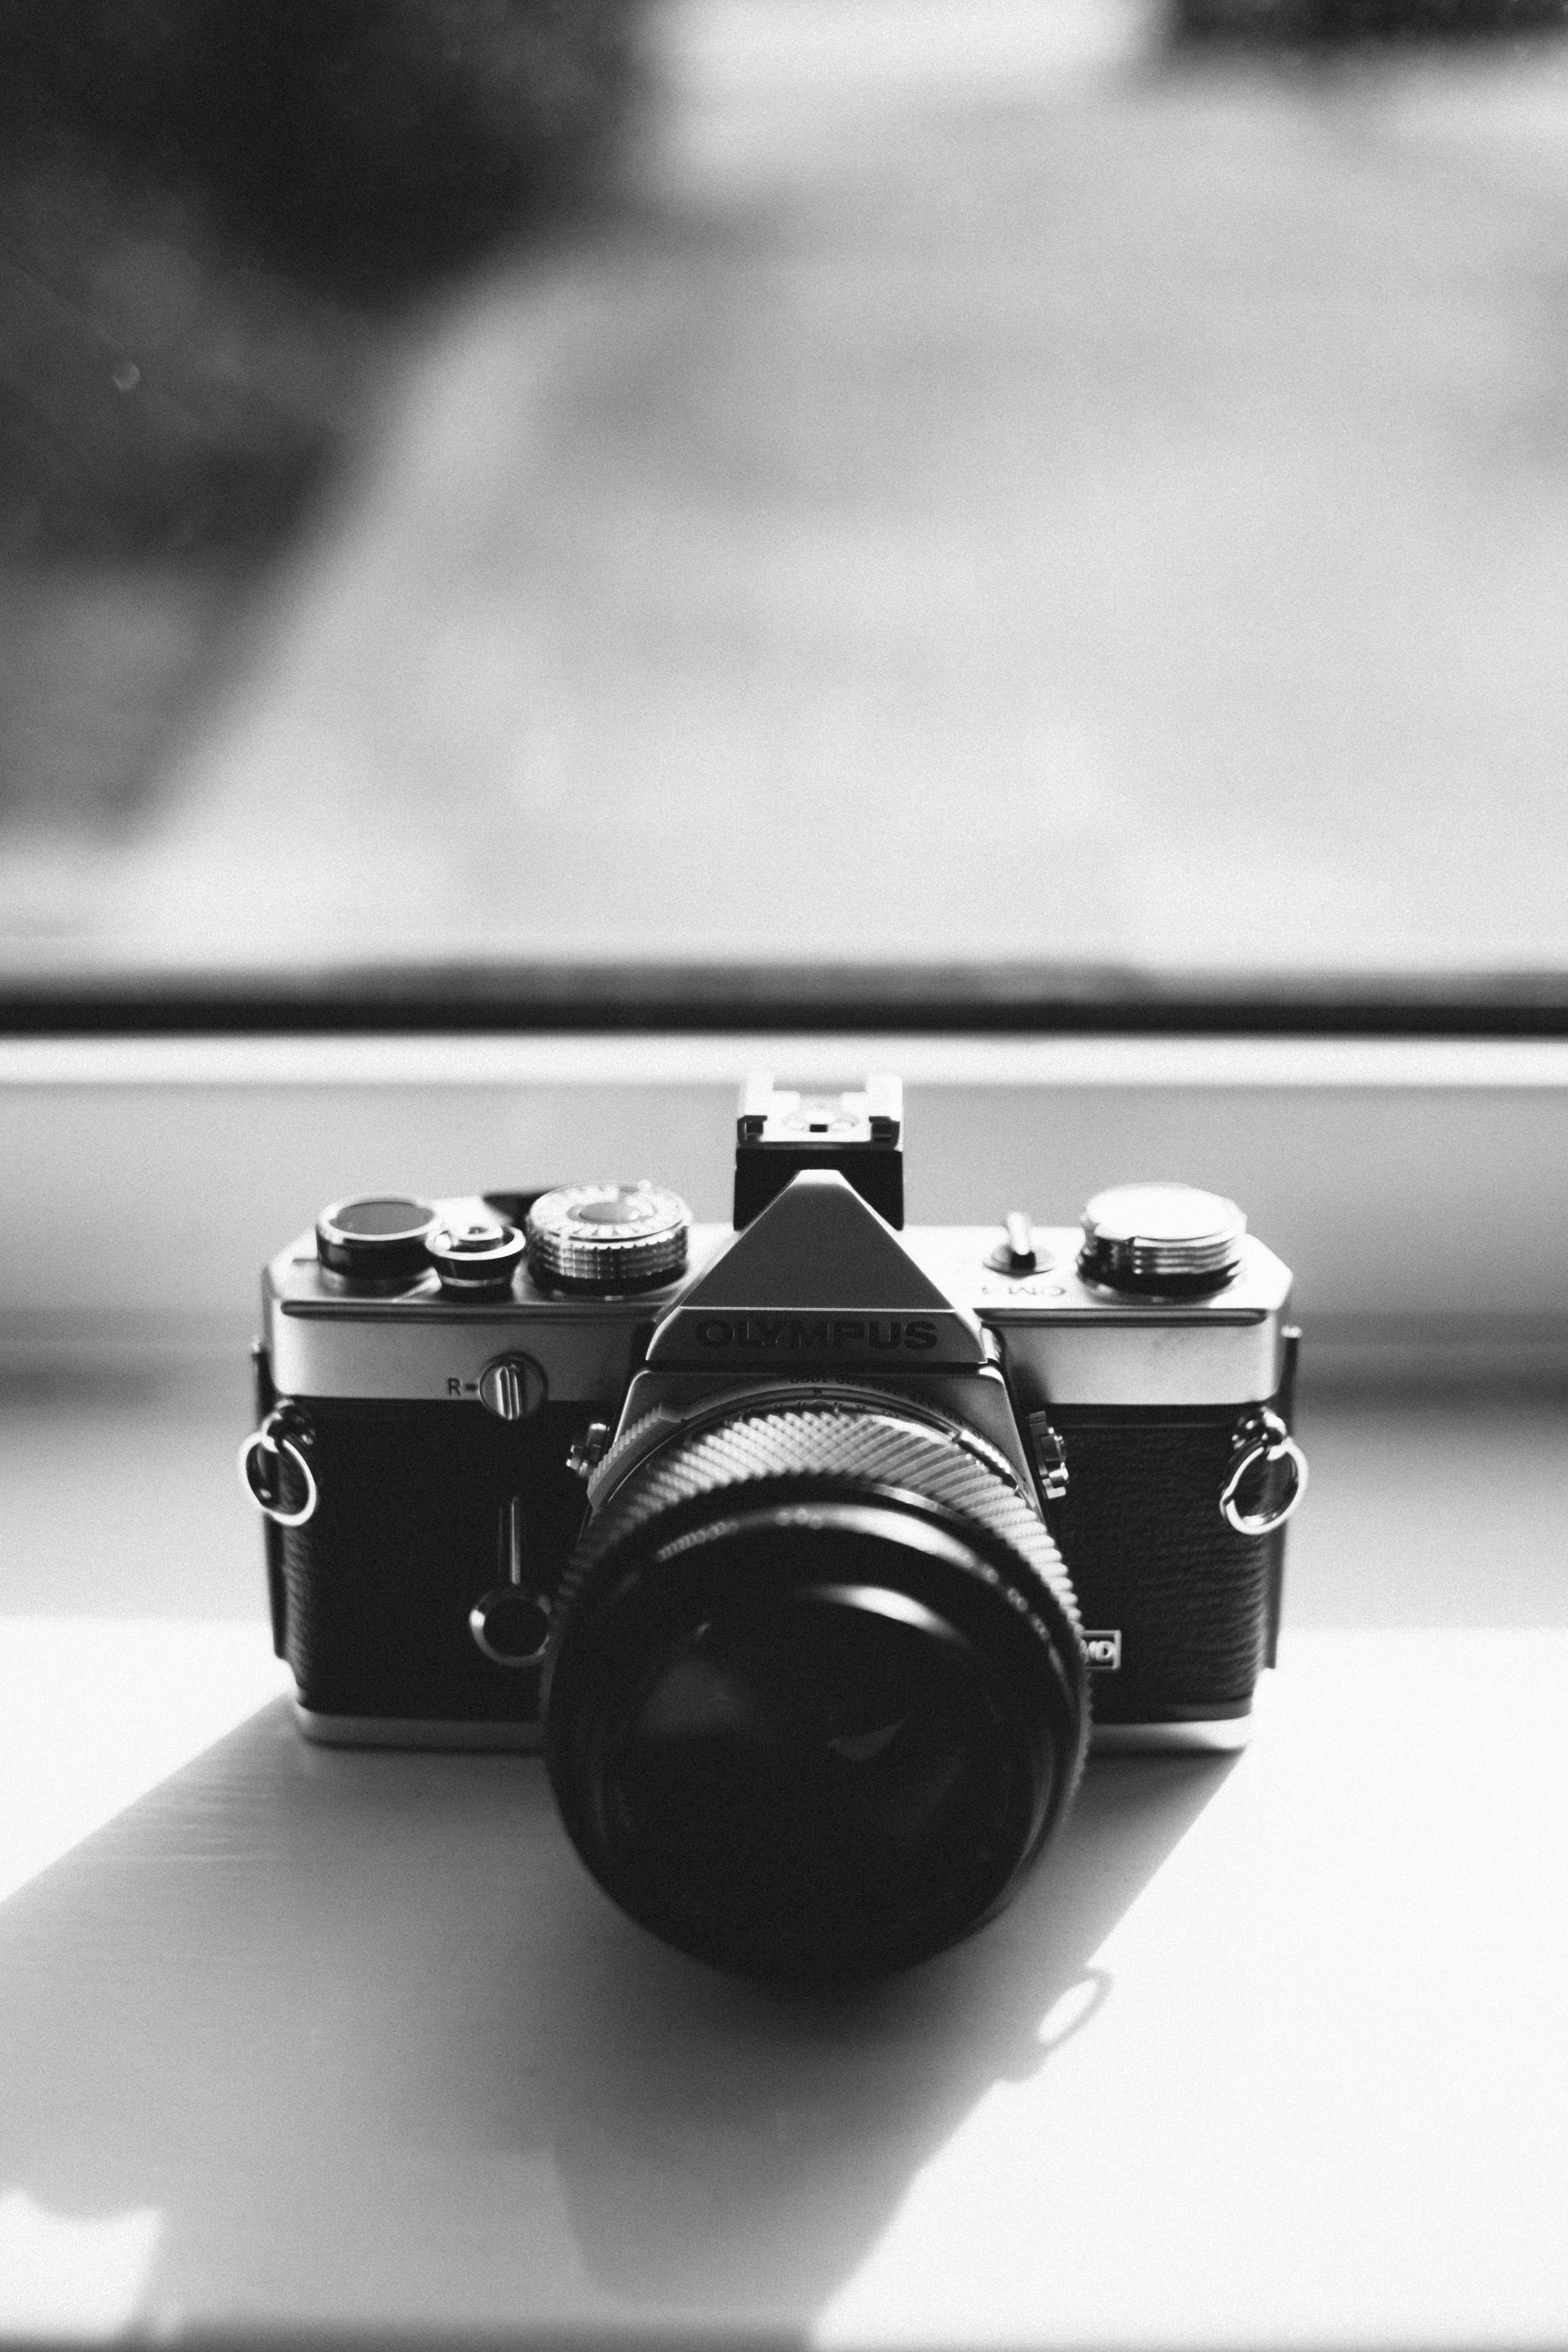 Grayscale Photography of Olympus Dslr Camera Near the Mirror